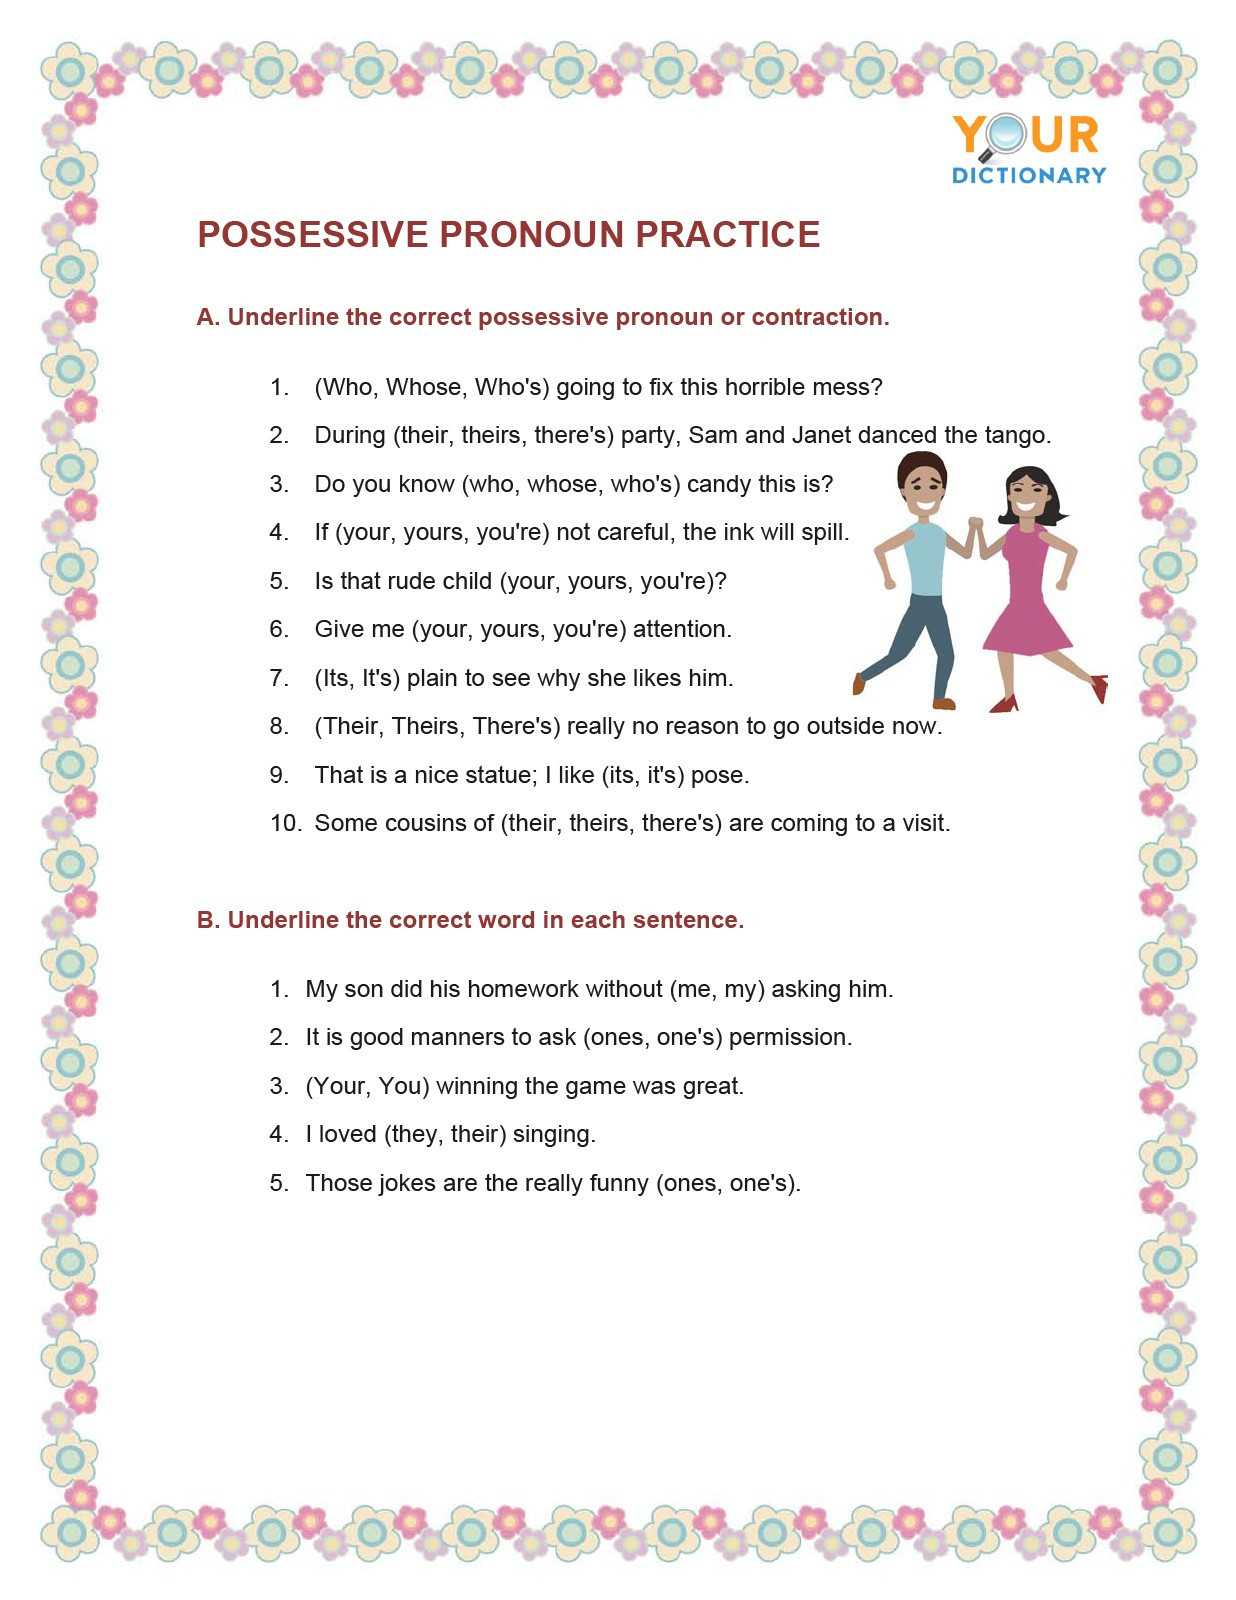 Possessive Pronouns Worksheets 6th Grade Types Of Pronouns Worksheets